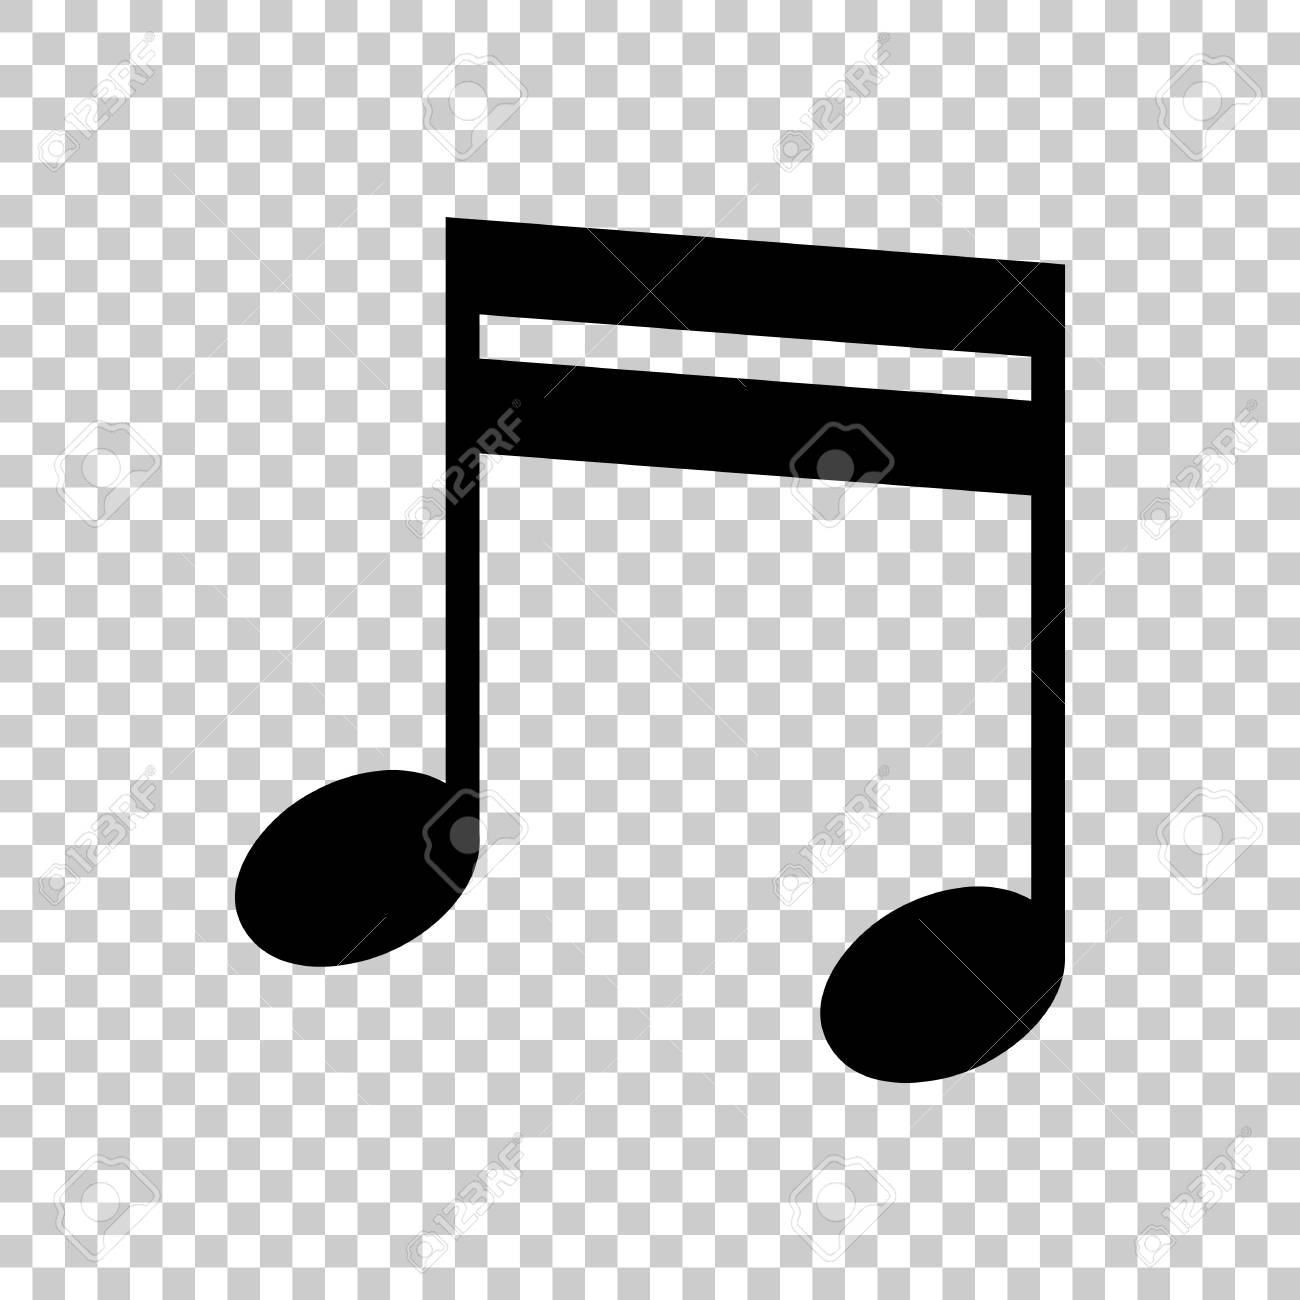 Music Note Icon Black Icon On Transparent Background Royalty Free